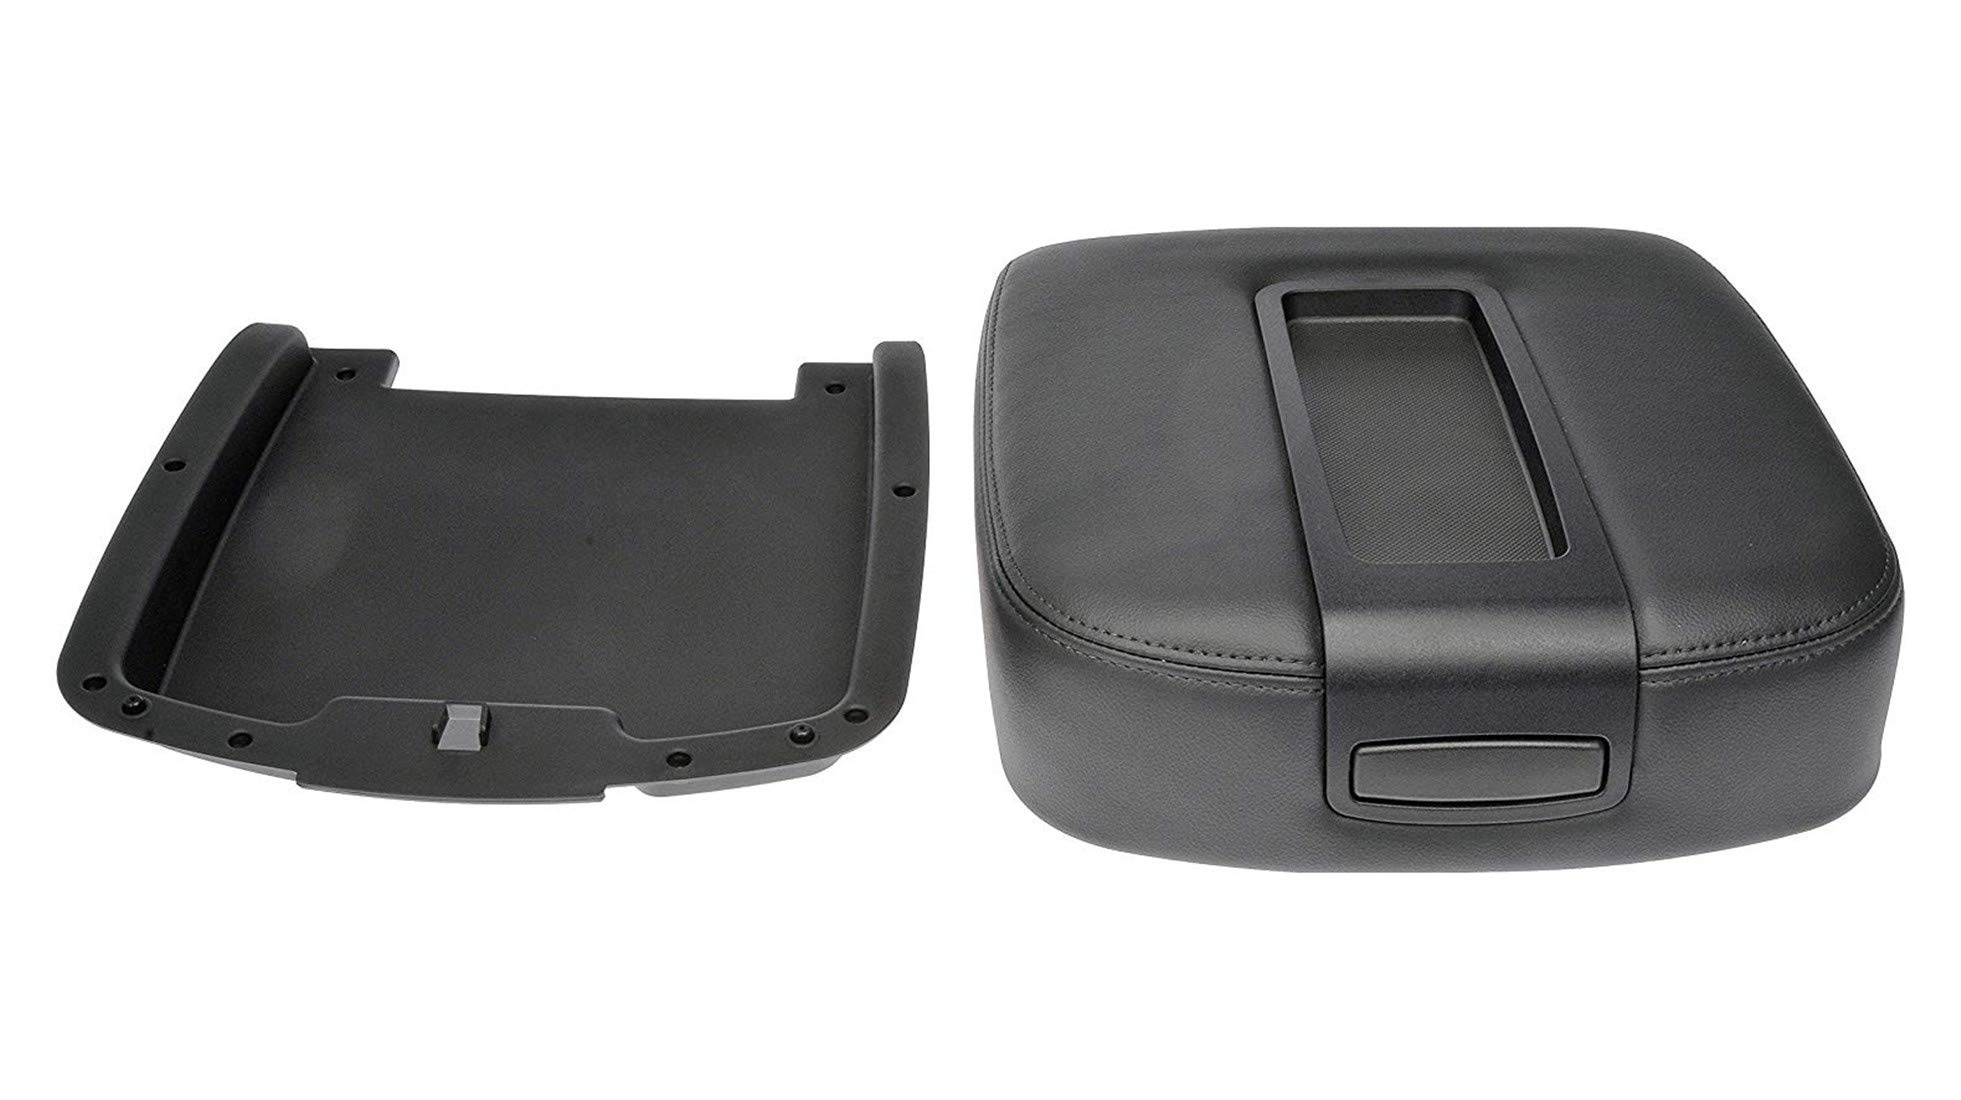 JAUTO Center Console Lid Kit for Select GM Vehicles - Replaces 15217111 15941534 - Black by JAUTO (Image #2)